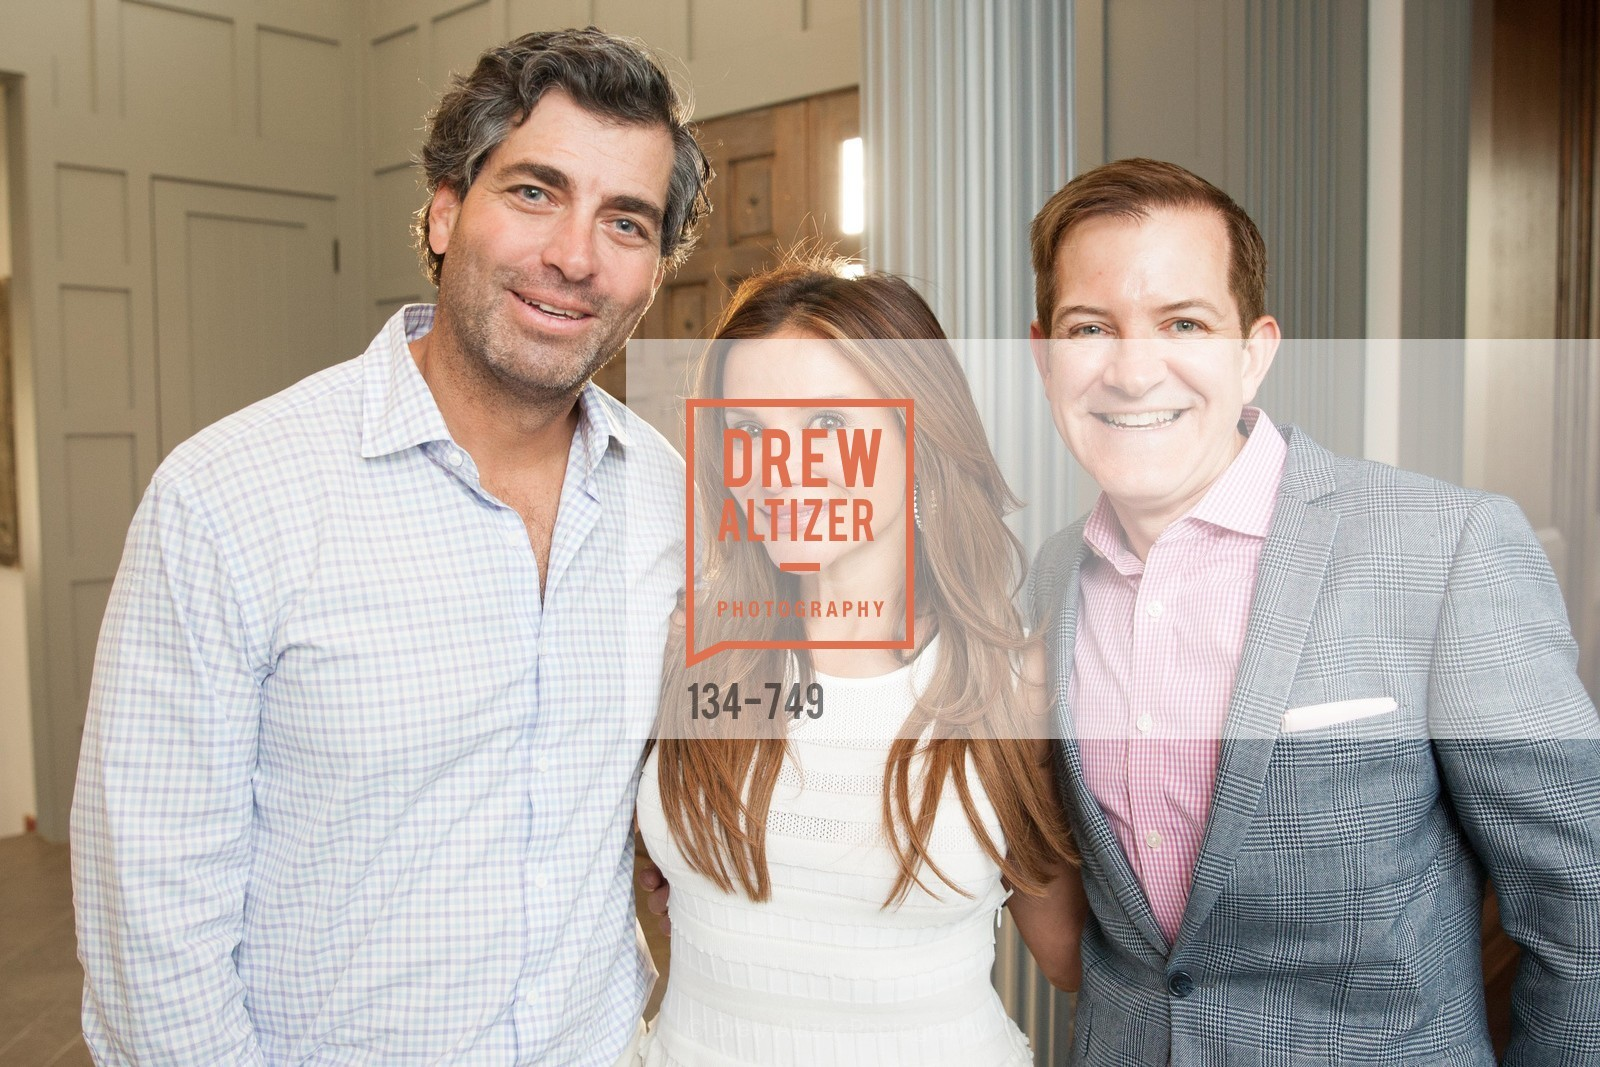 Keith Ross, Claudia Ross, Trent Norris, PETER COPPING Meets and Greets OSCAR DELA RENTA Clients and Associates at NEIMAN MARCUS, US, May 23rd, 2015,Drew Altizer, Drew Altizer Photography, full-service agency, private events, San Francisco photographer, photographer california